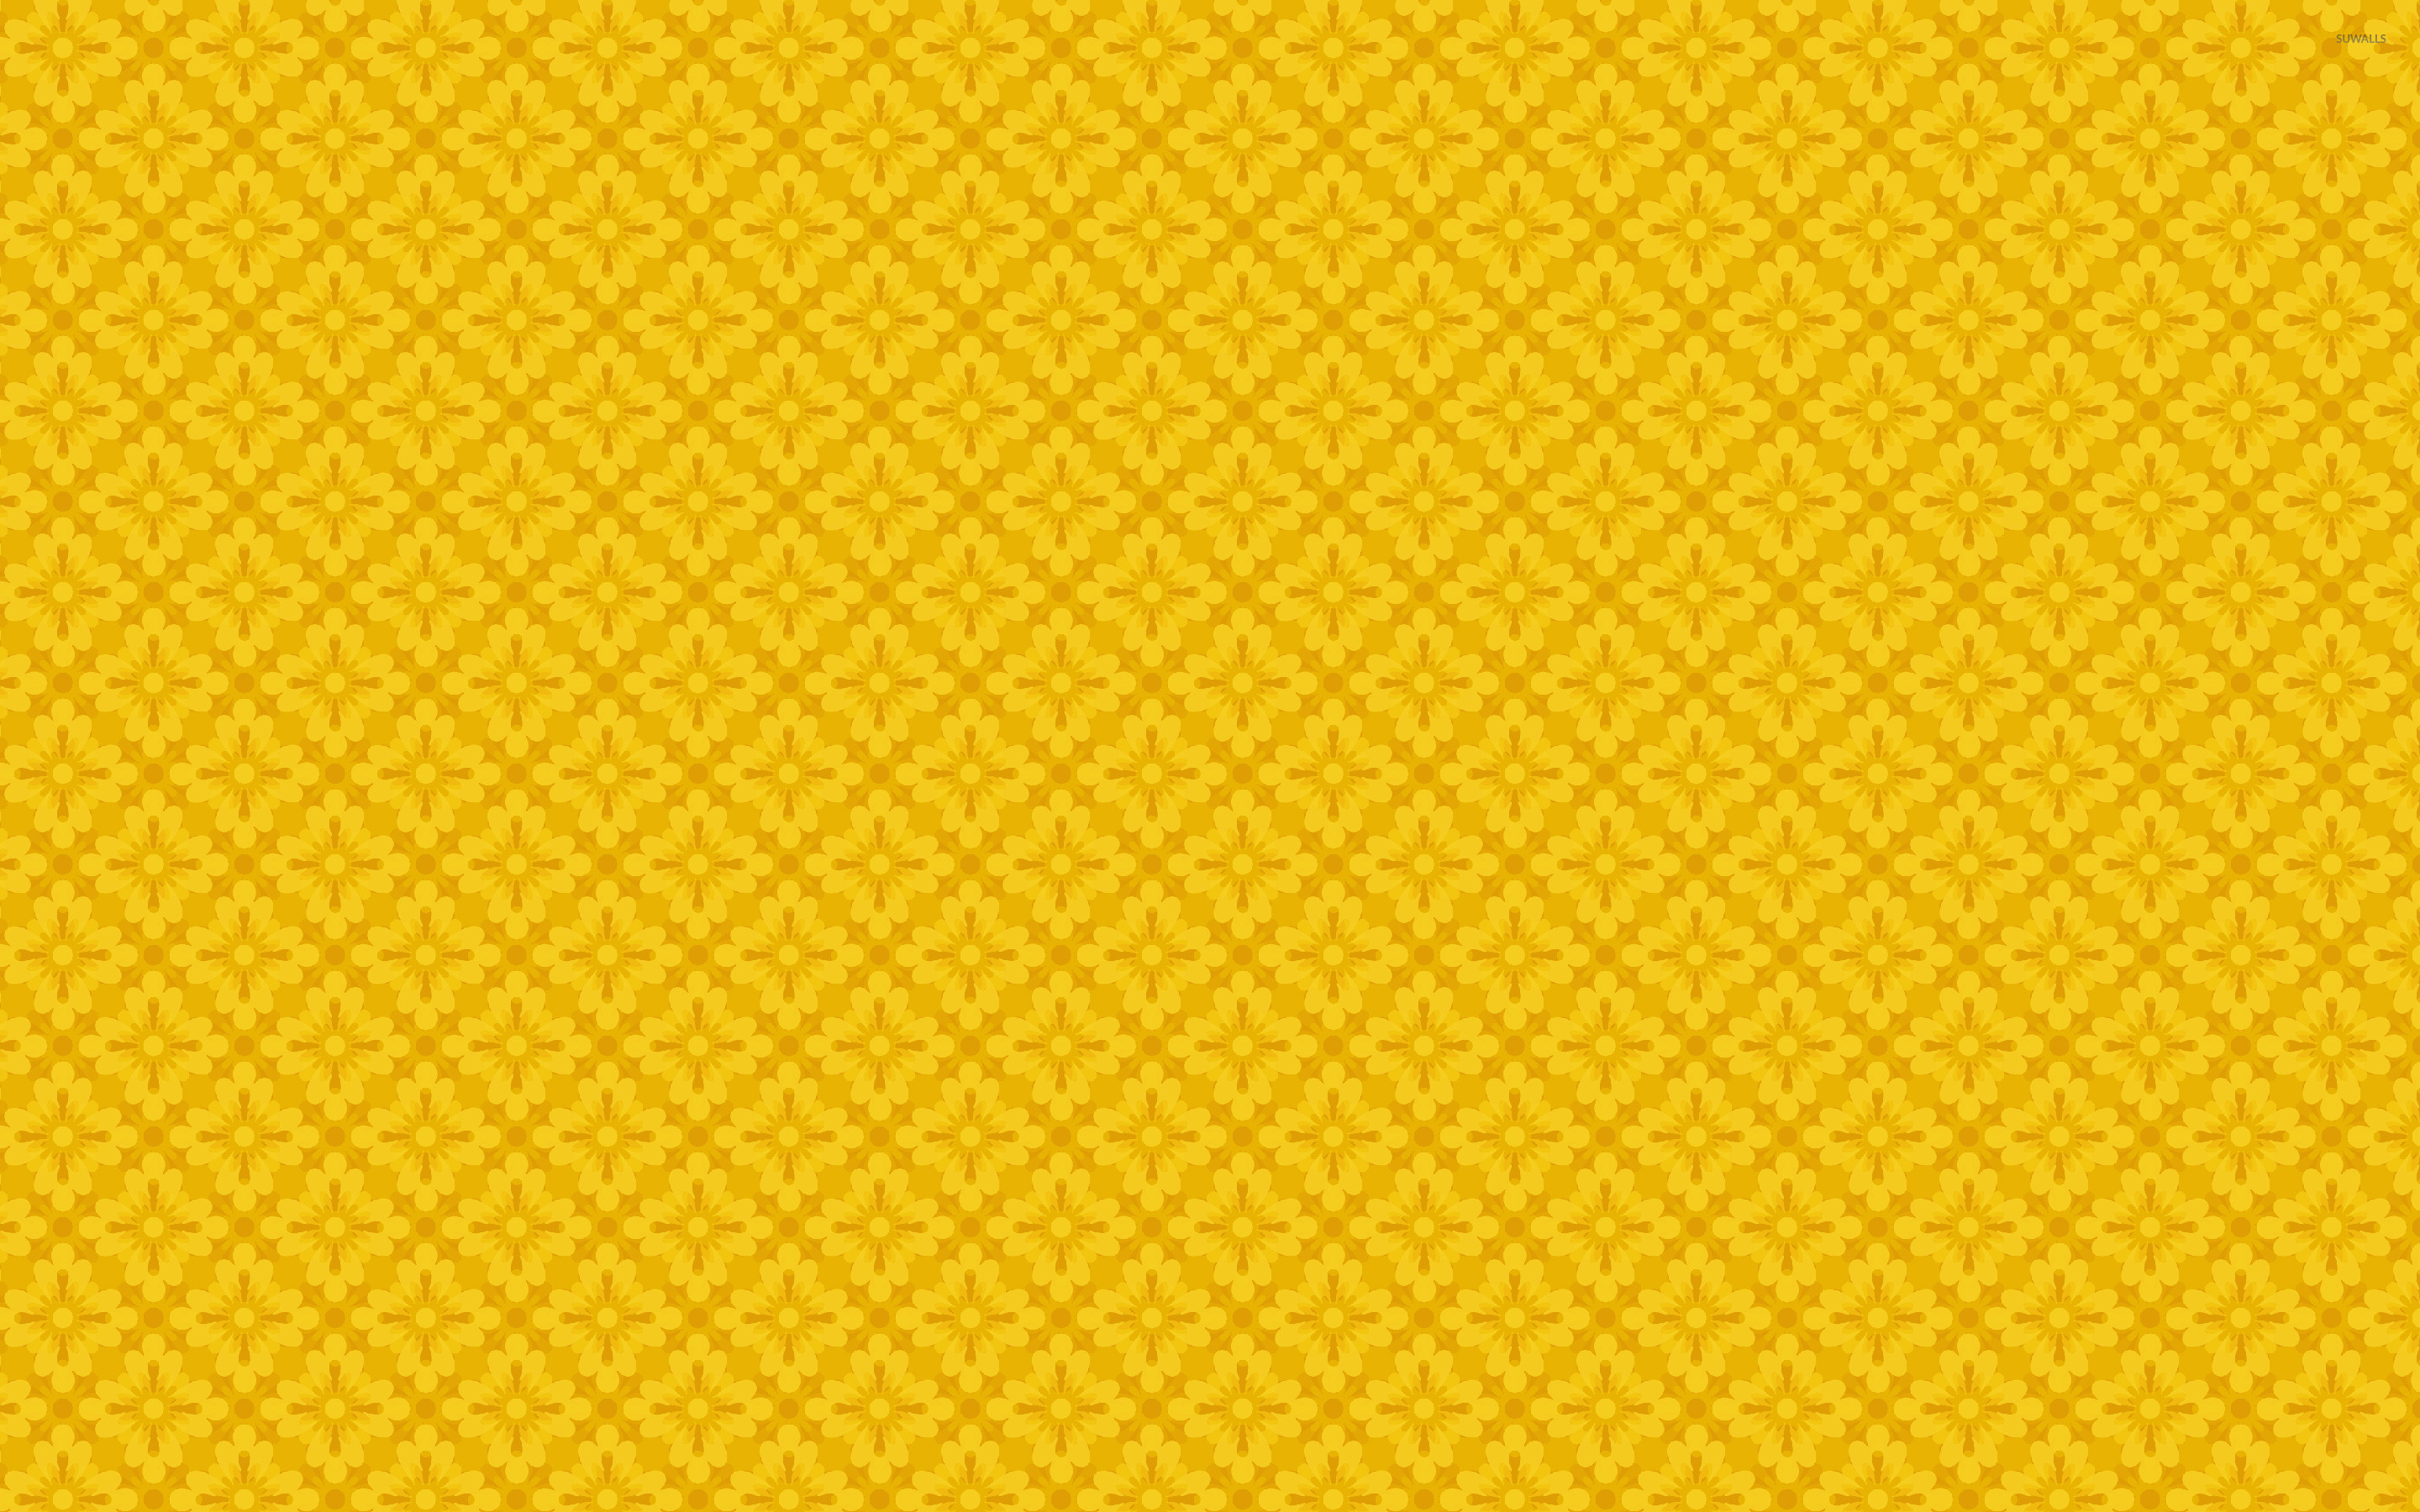 yellow floral pattern - photo #20